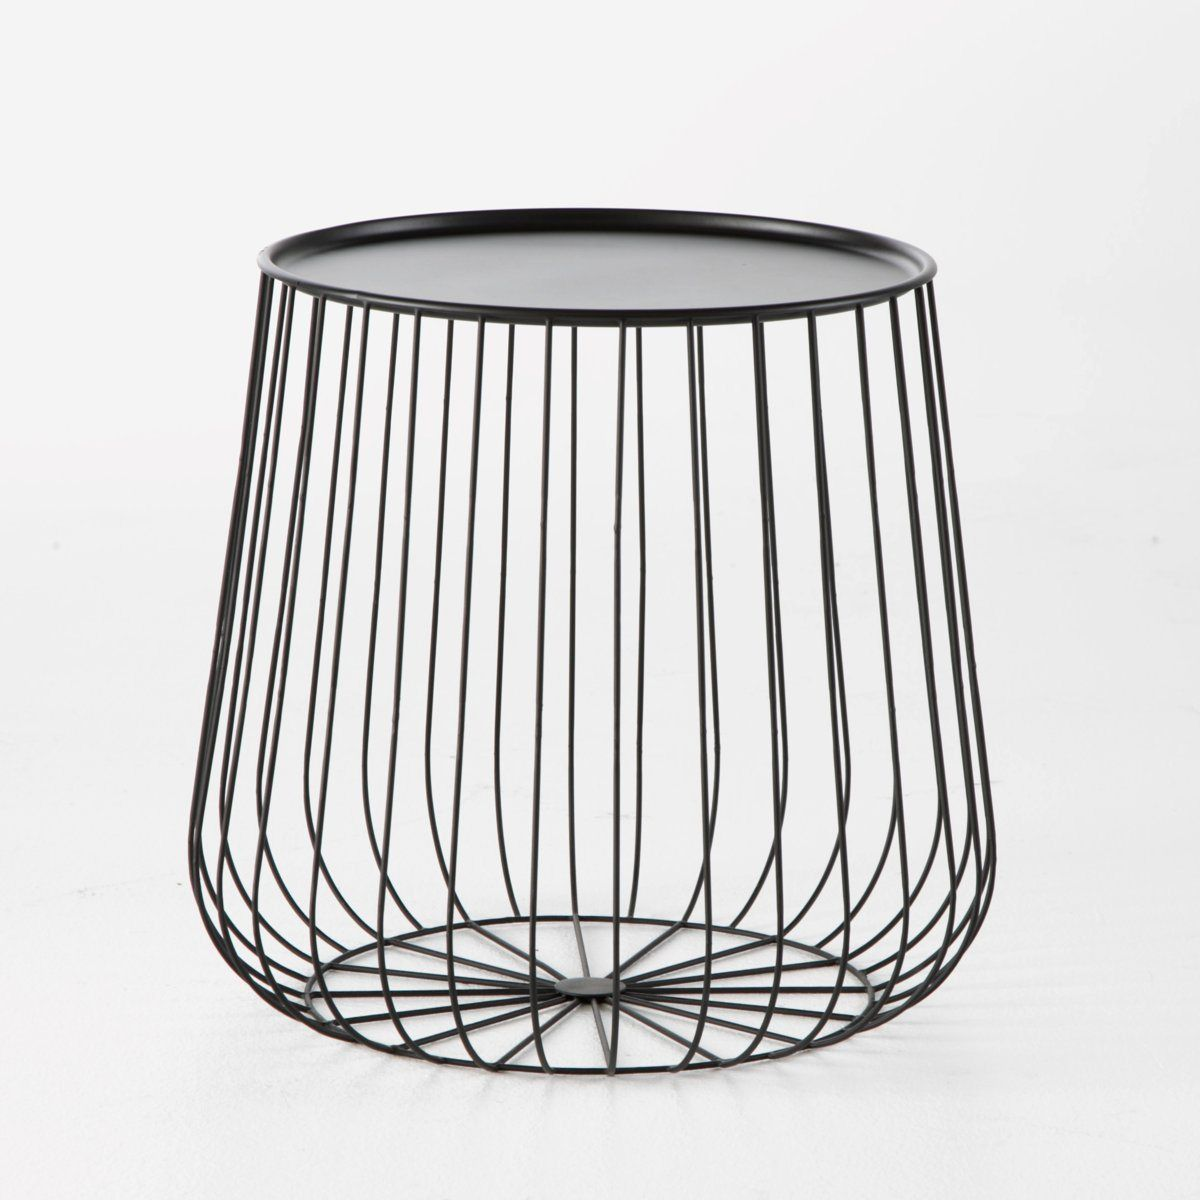 Bout De Canape Cage Fil Metal Am Pm Http Www Laredoute Fr Vente Bout De Canape Cage Fil Metal Aspx Productid 324276749 999999 120002343 0 0 1 Pos 39 N N N N